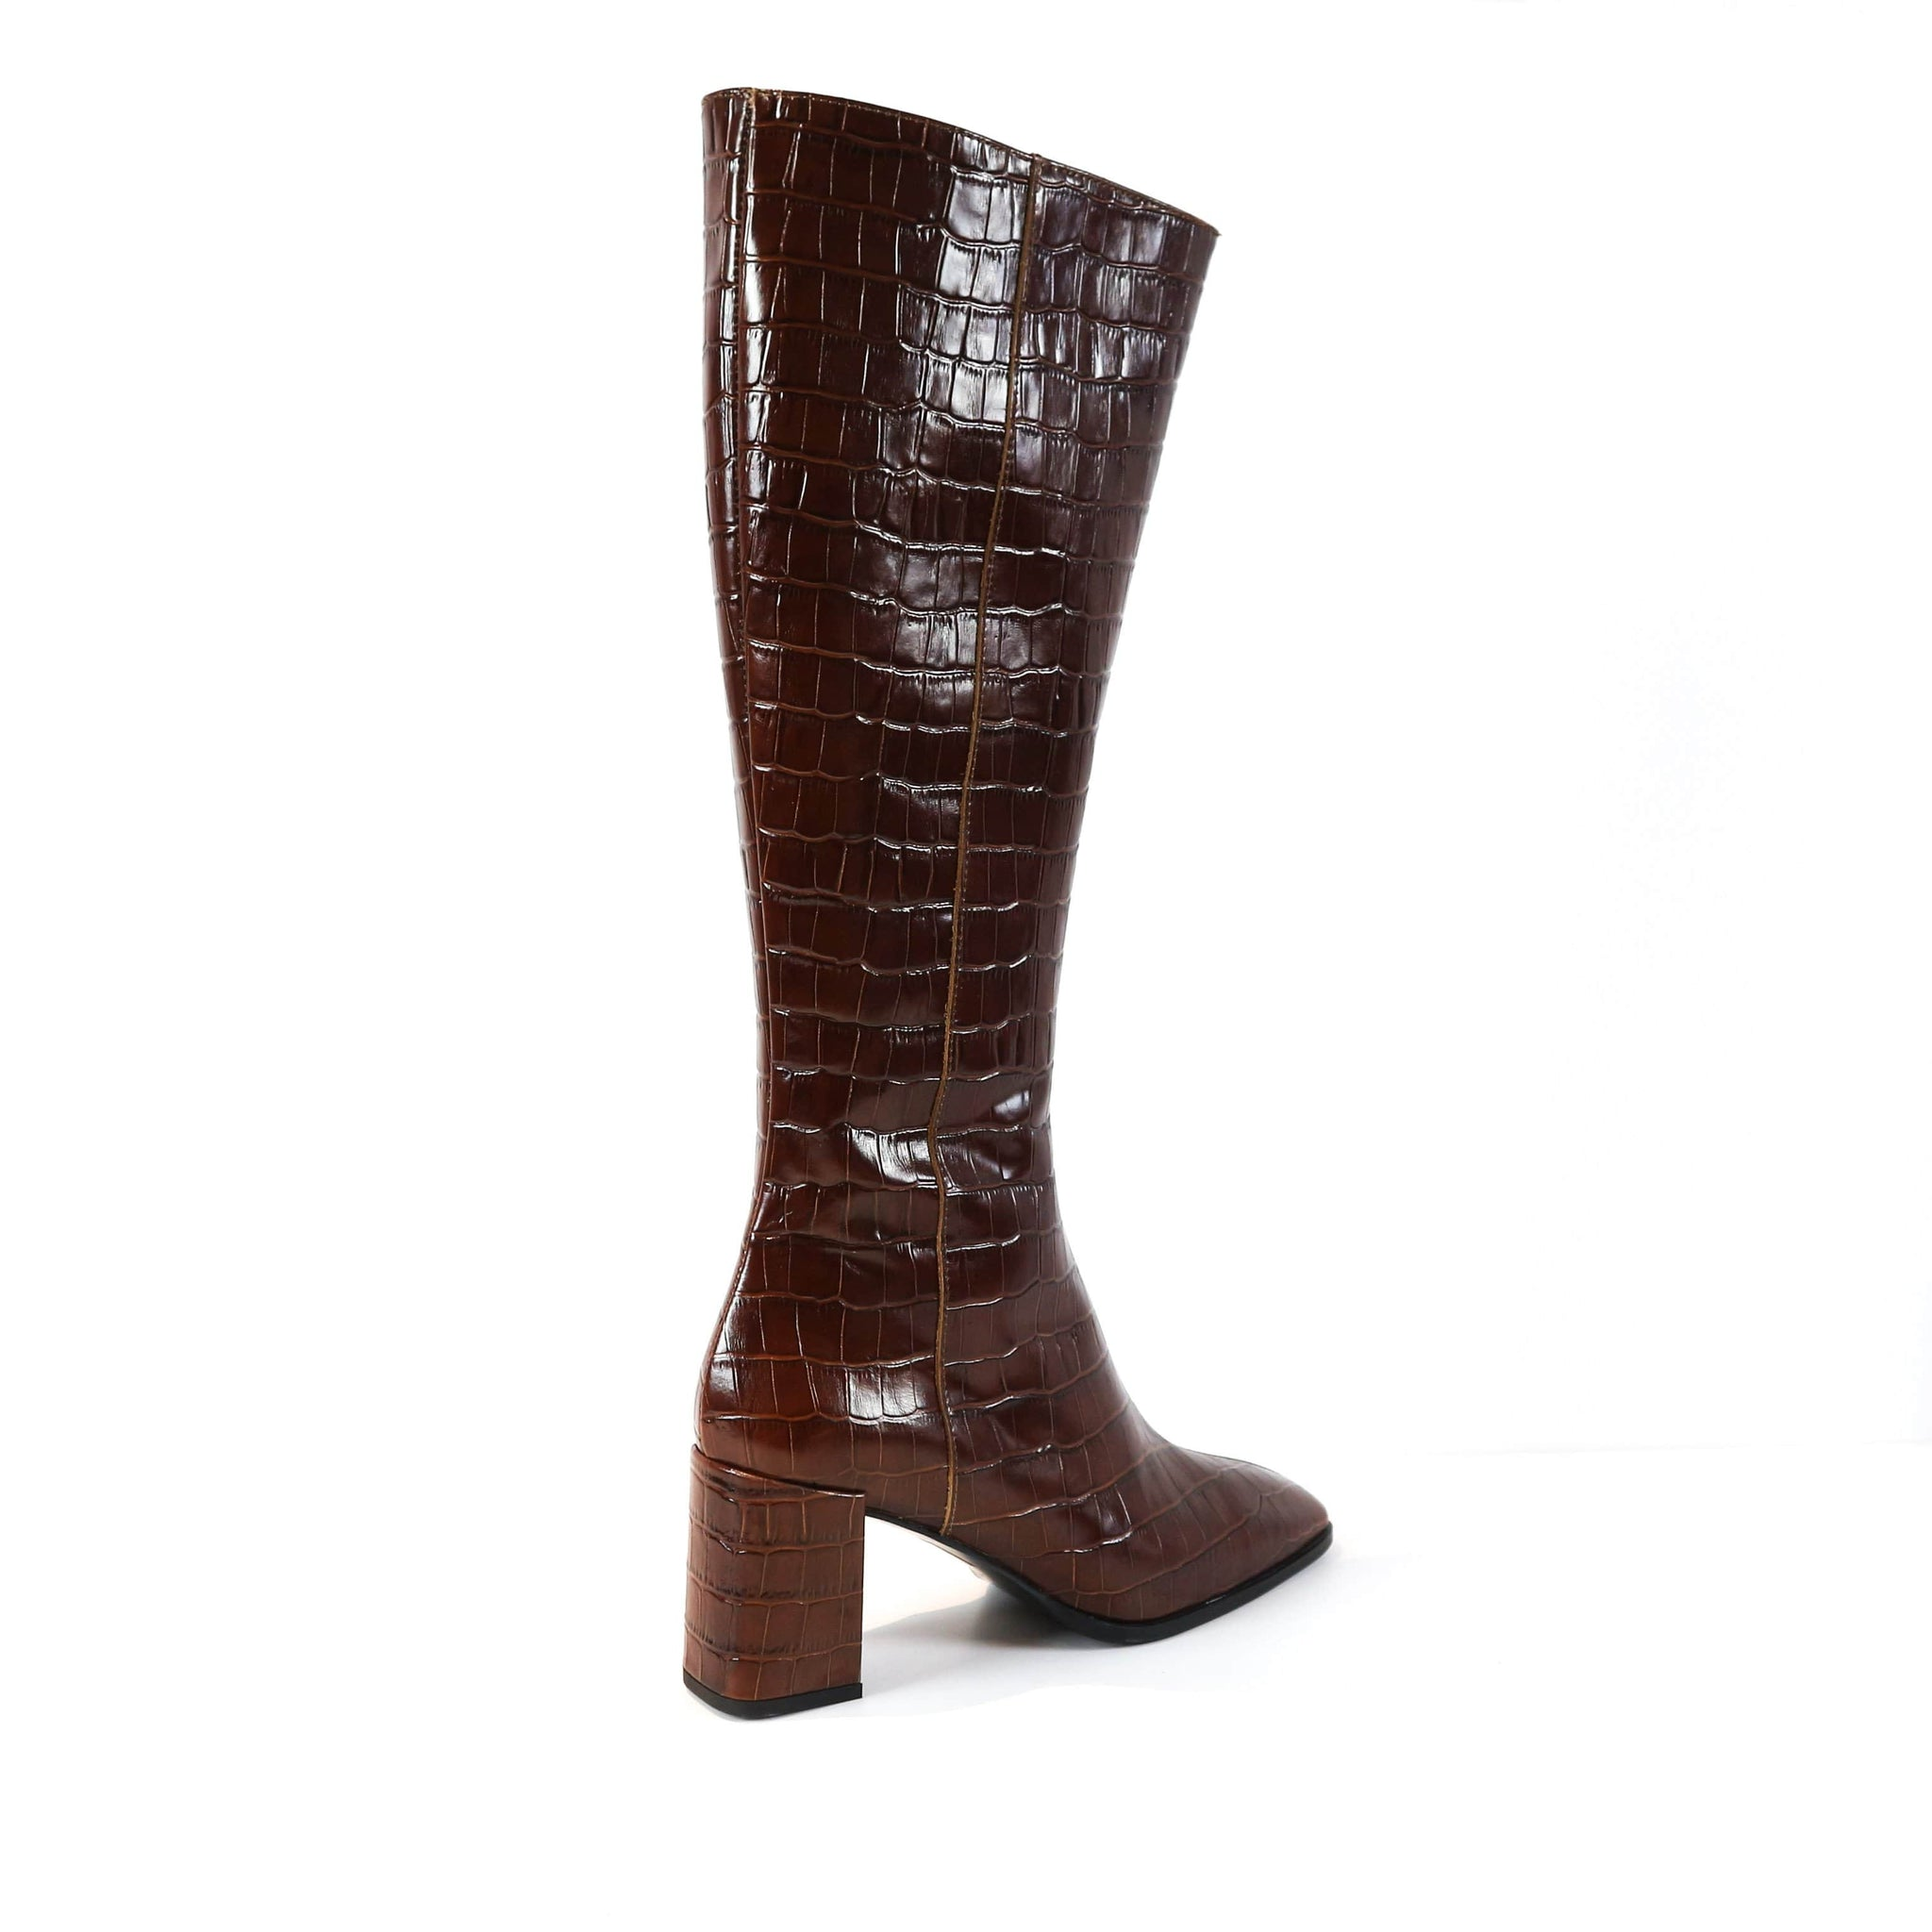 LUZ | Brandy Leather Knee High Boots - TrystShoes